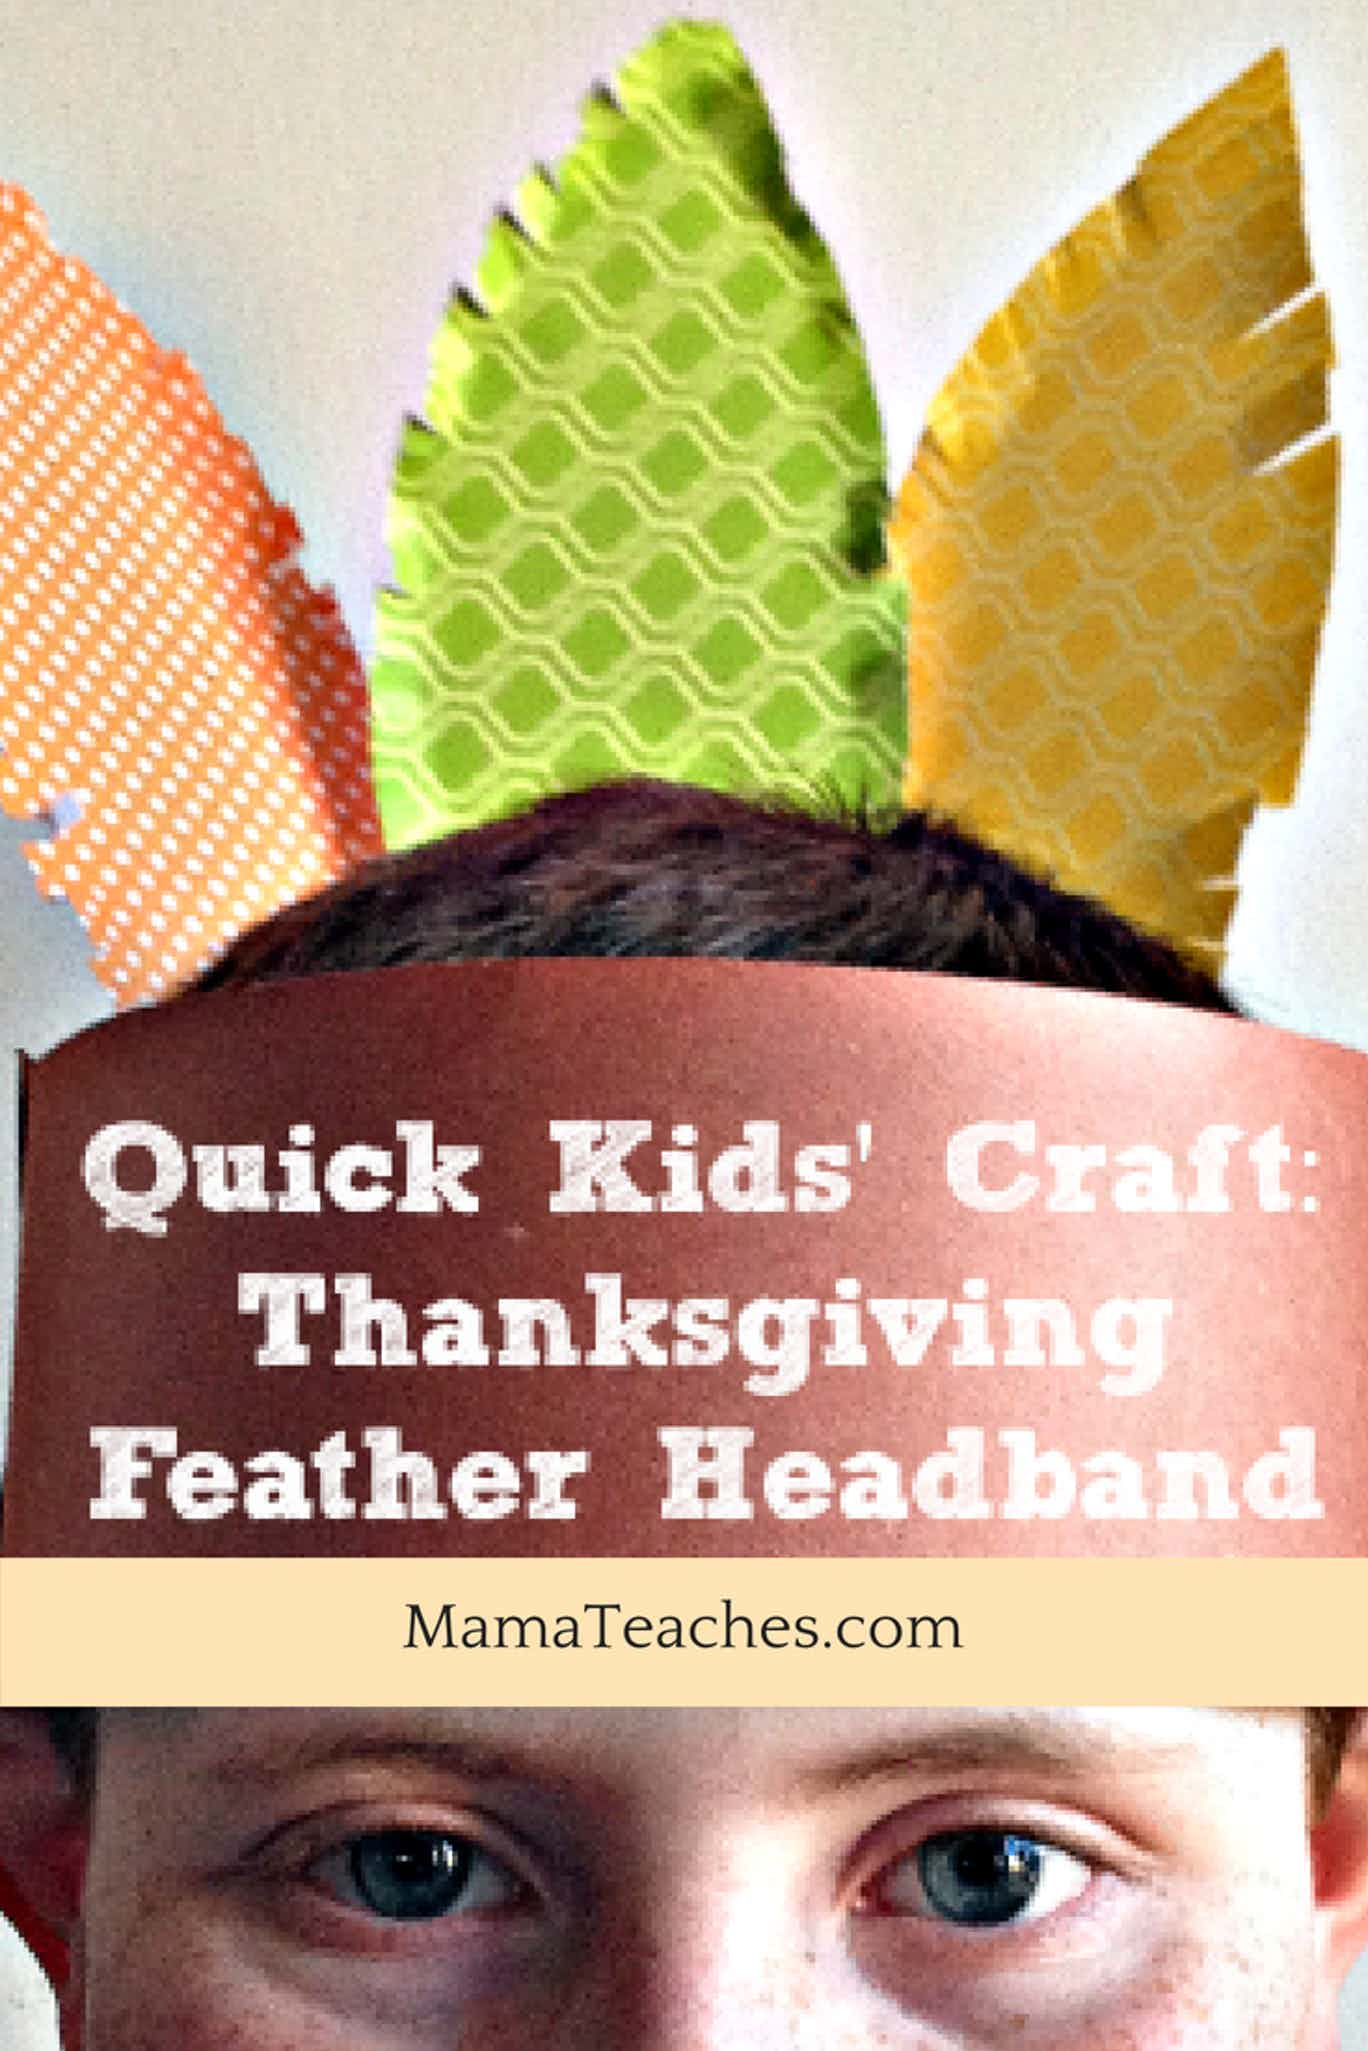 Thanksgiving Feather Headband Craft for Kids